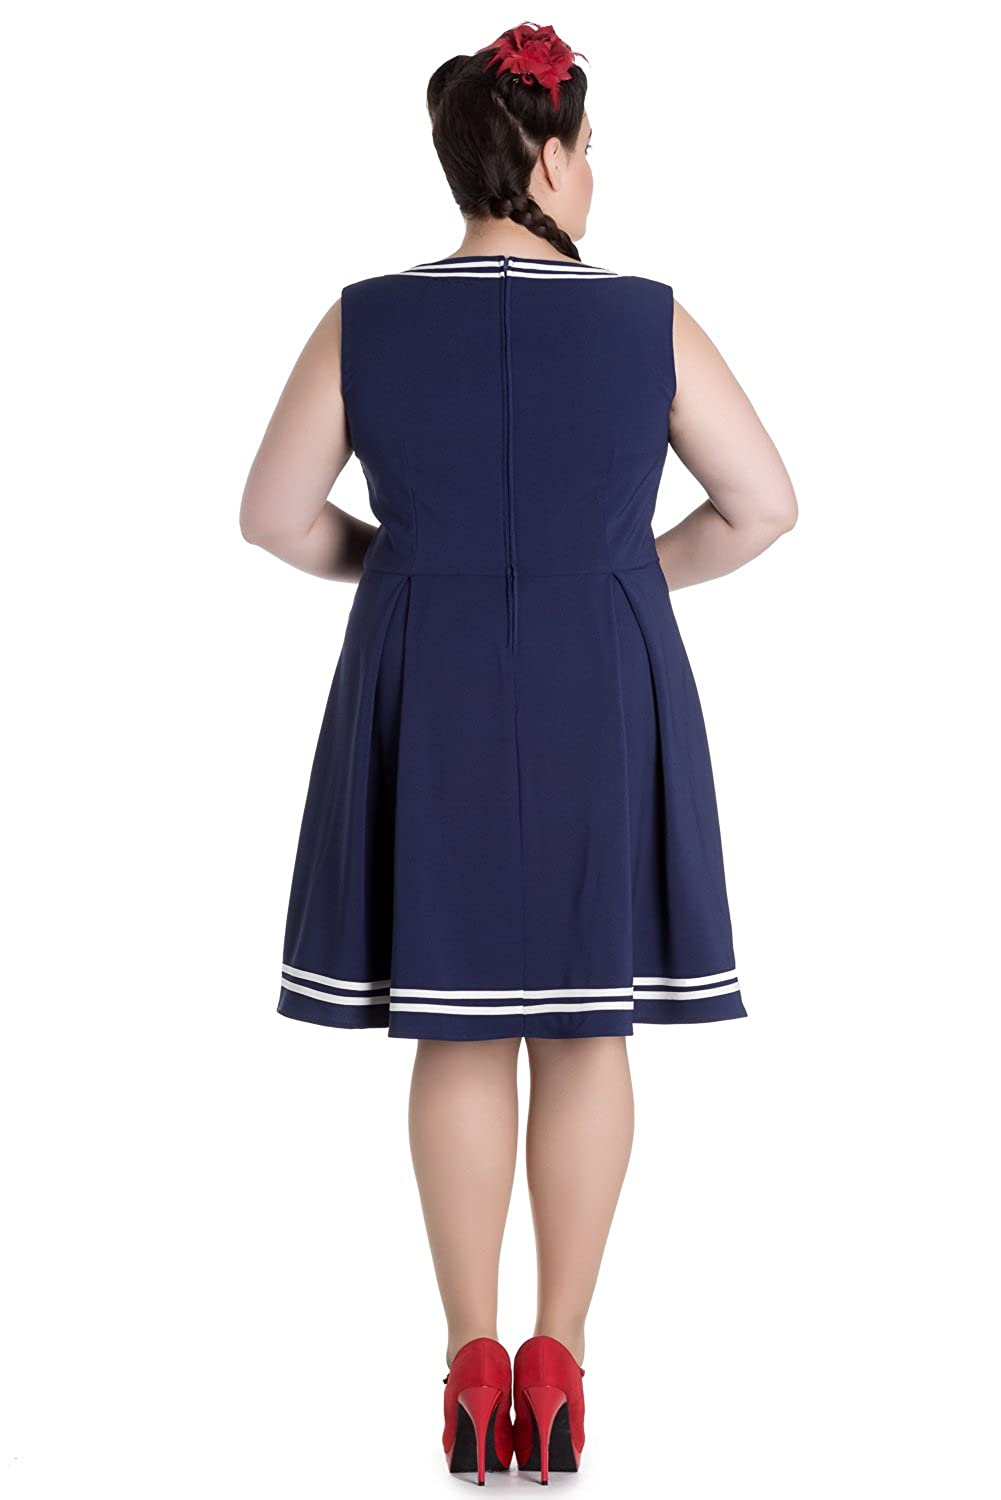 ff88492d322 Hell Bunny Plus Size Kawaii Navy Sailor Nautical Love Mini Dress at Amazon  Women s Clothing store